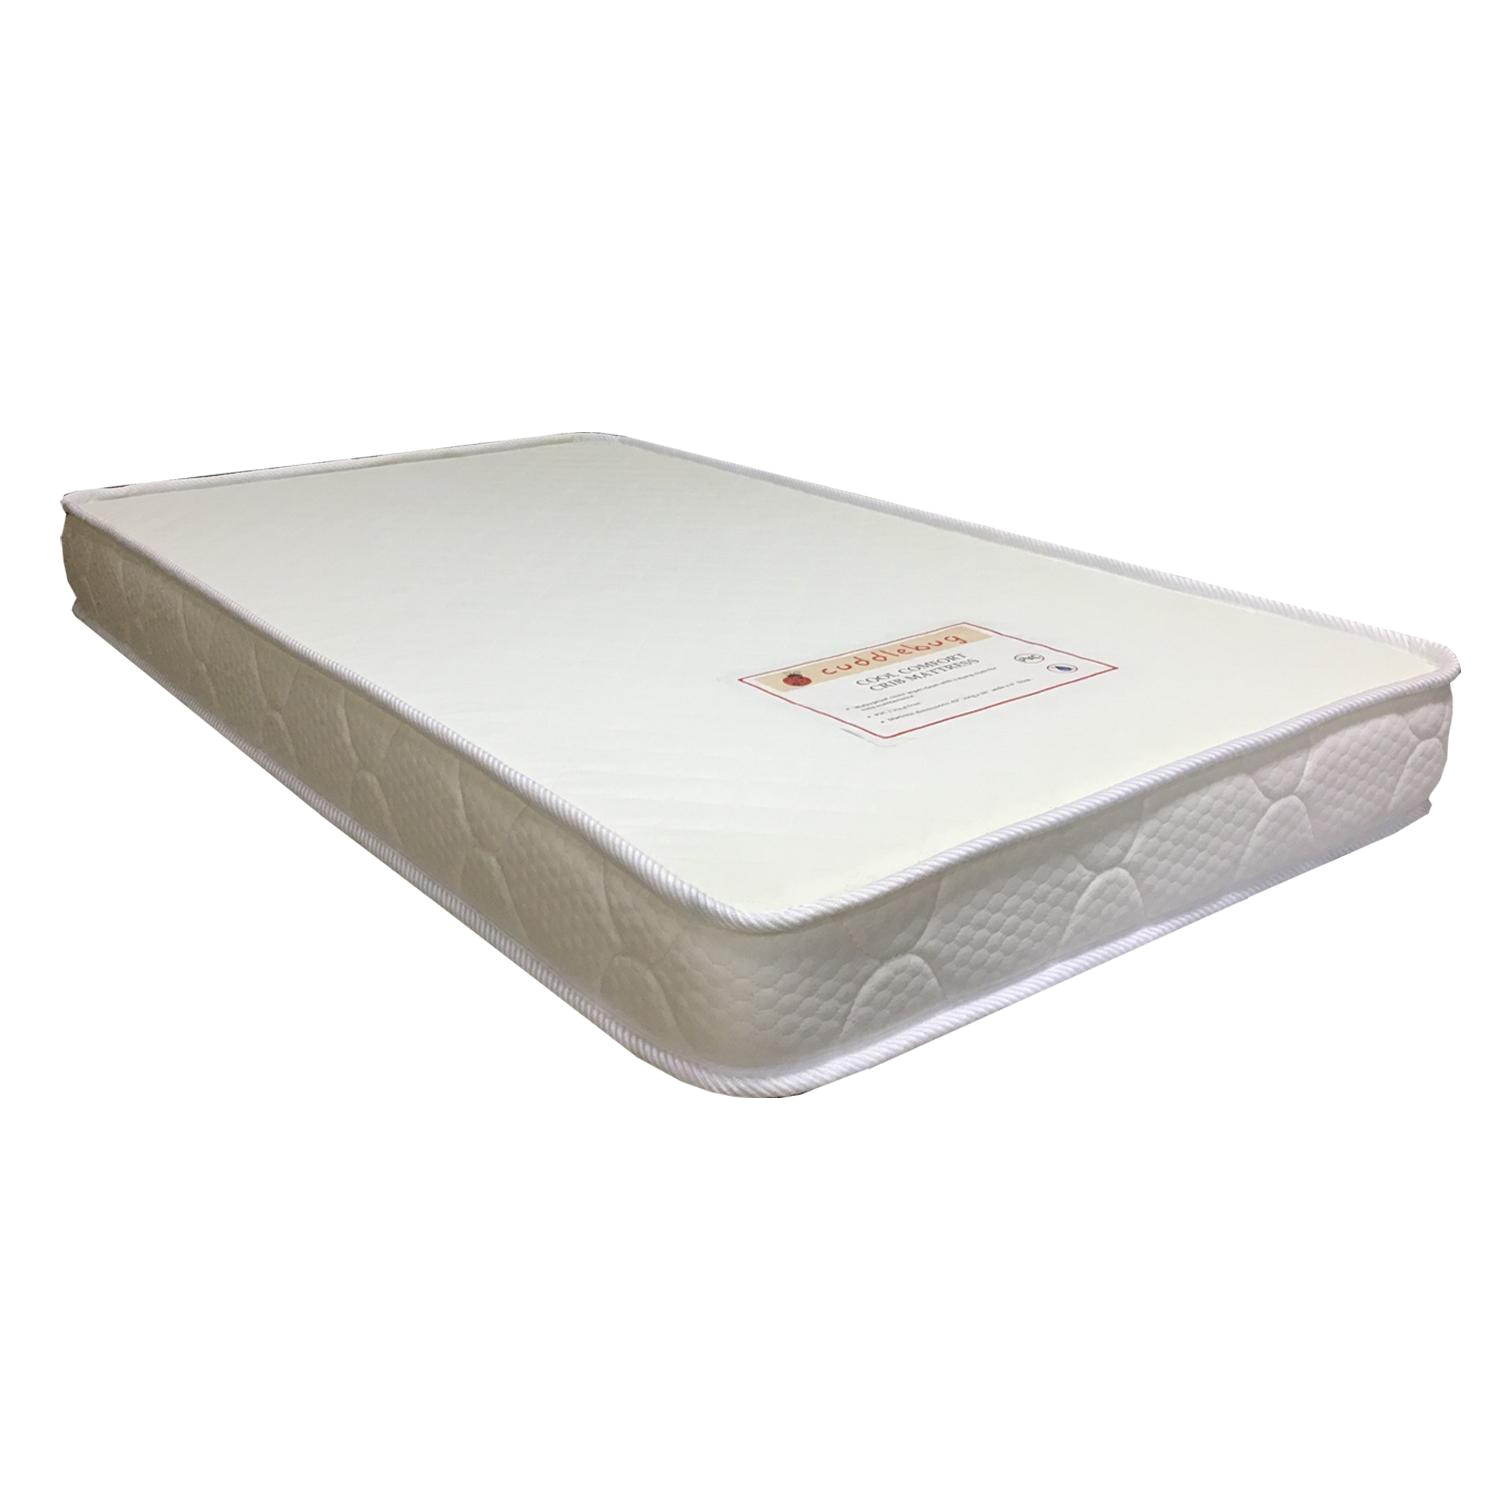 cuddlebug mattress mini 24 x 42